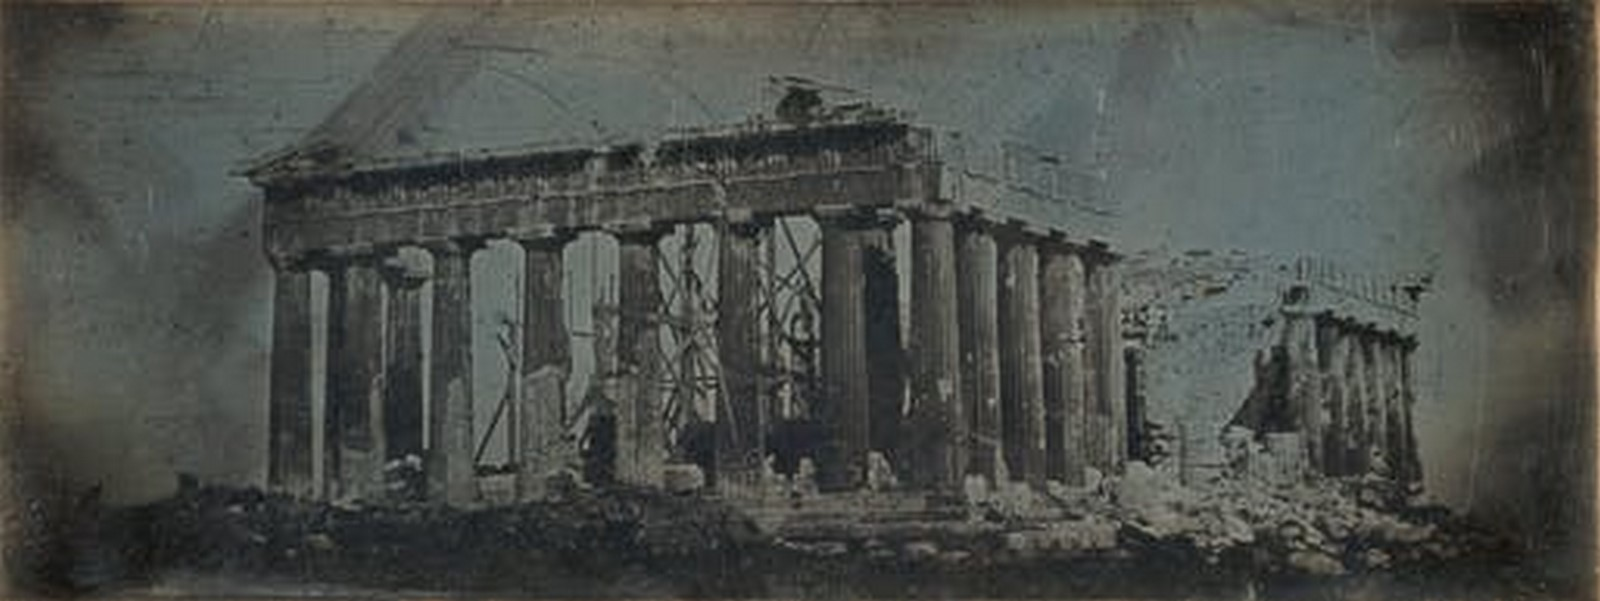 A brief history of Architectural Photography - Sheet13